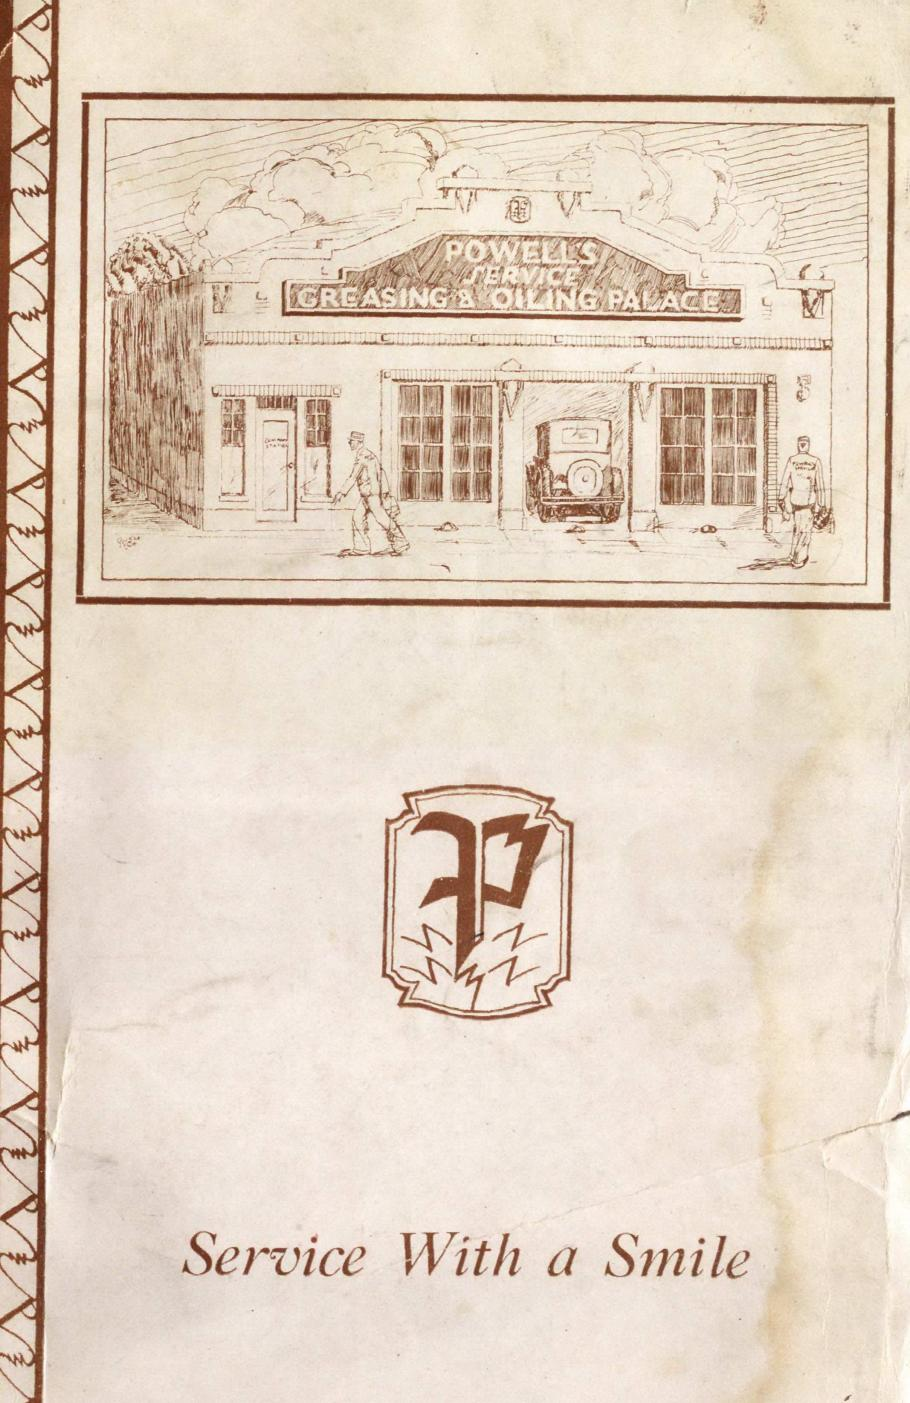 Image of service station from brochure